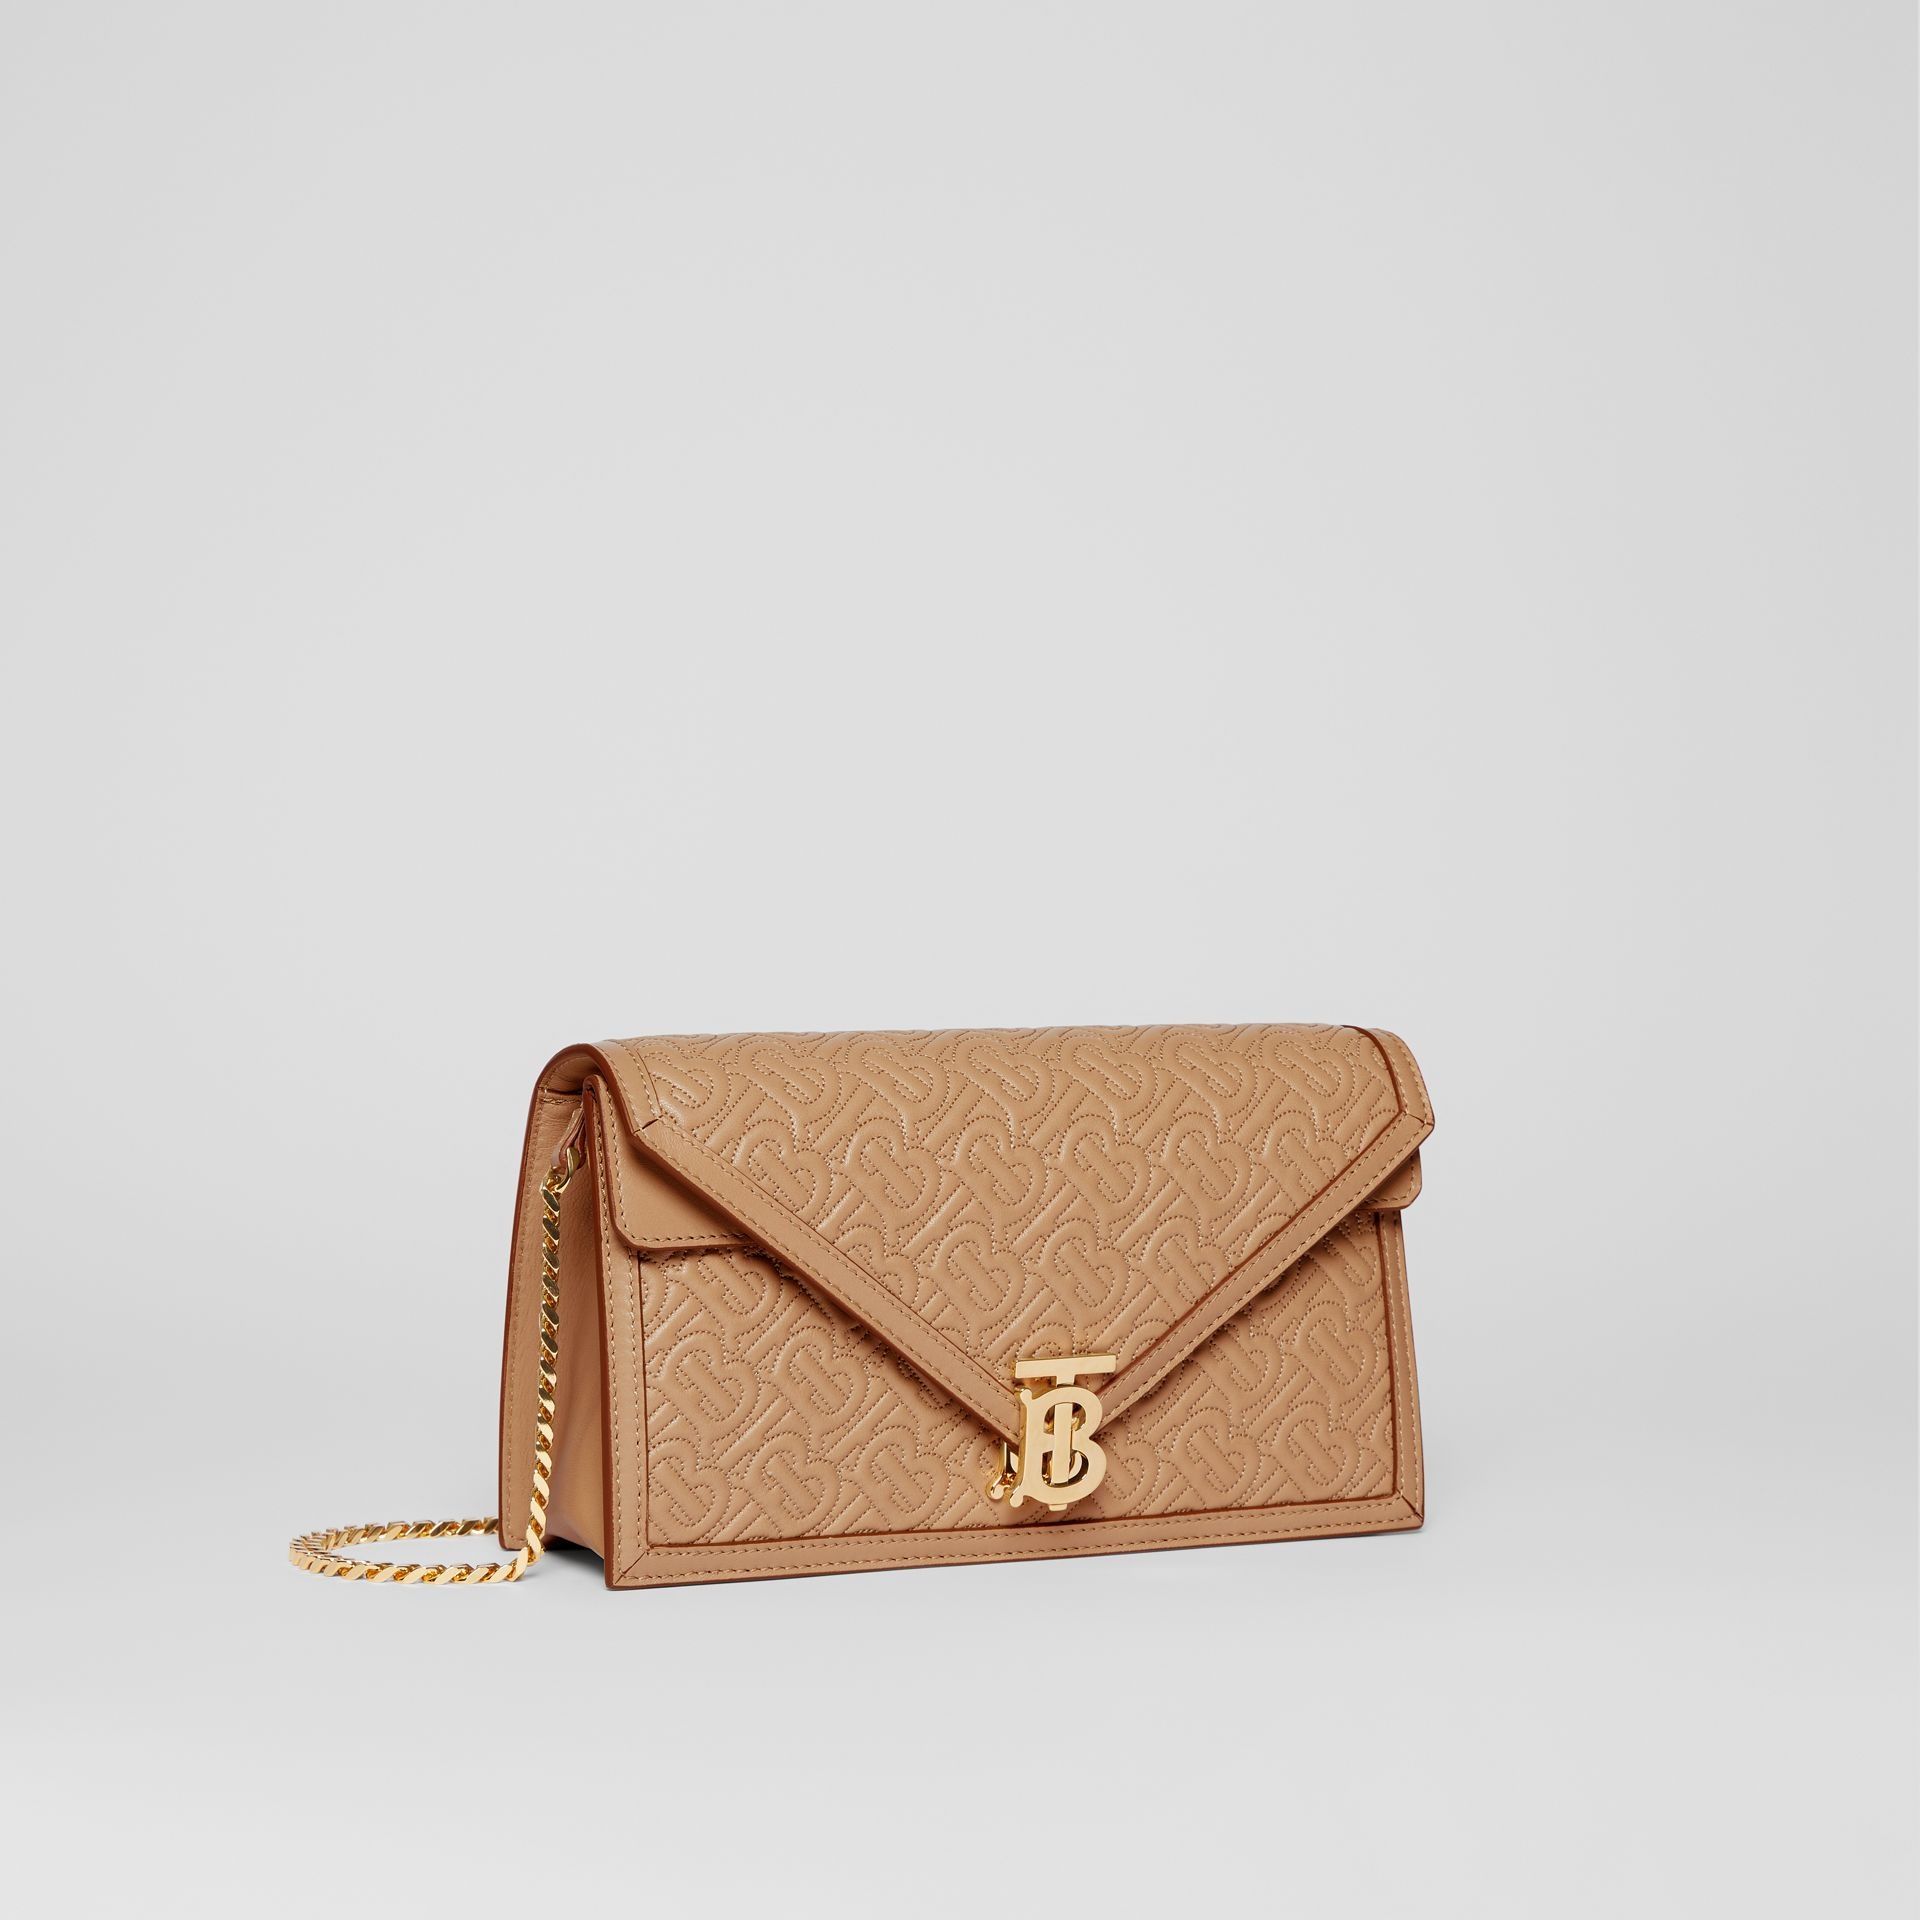 Small Quilted Monogram TB Envelope Clutch in Honey - Women | Burberry - gallery image 4